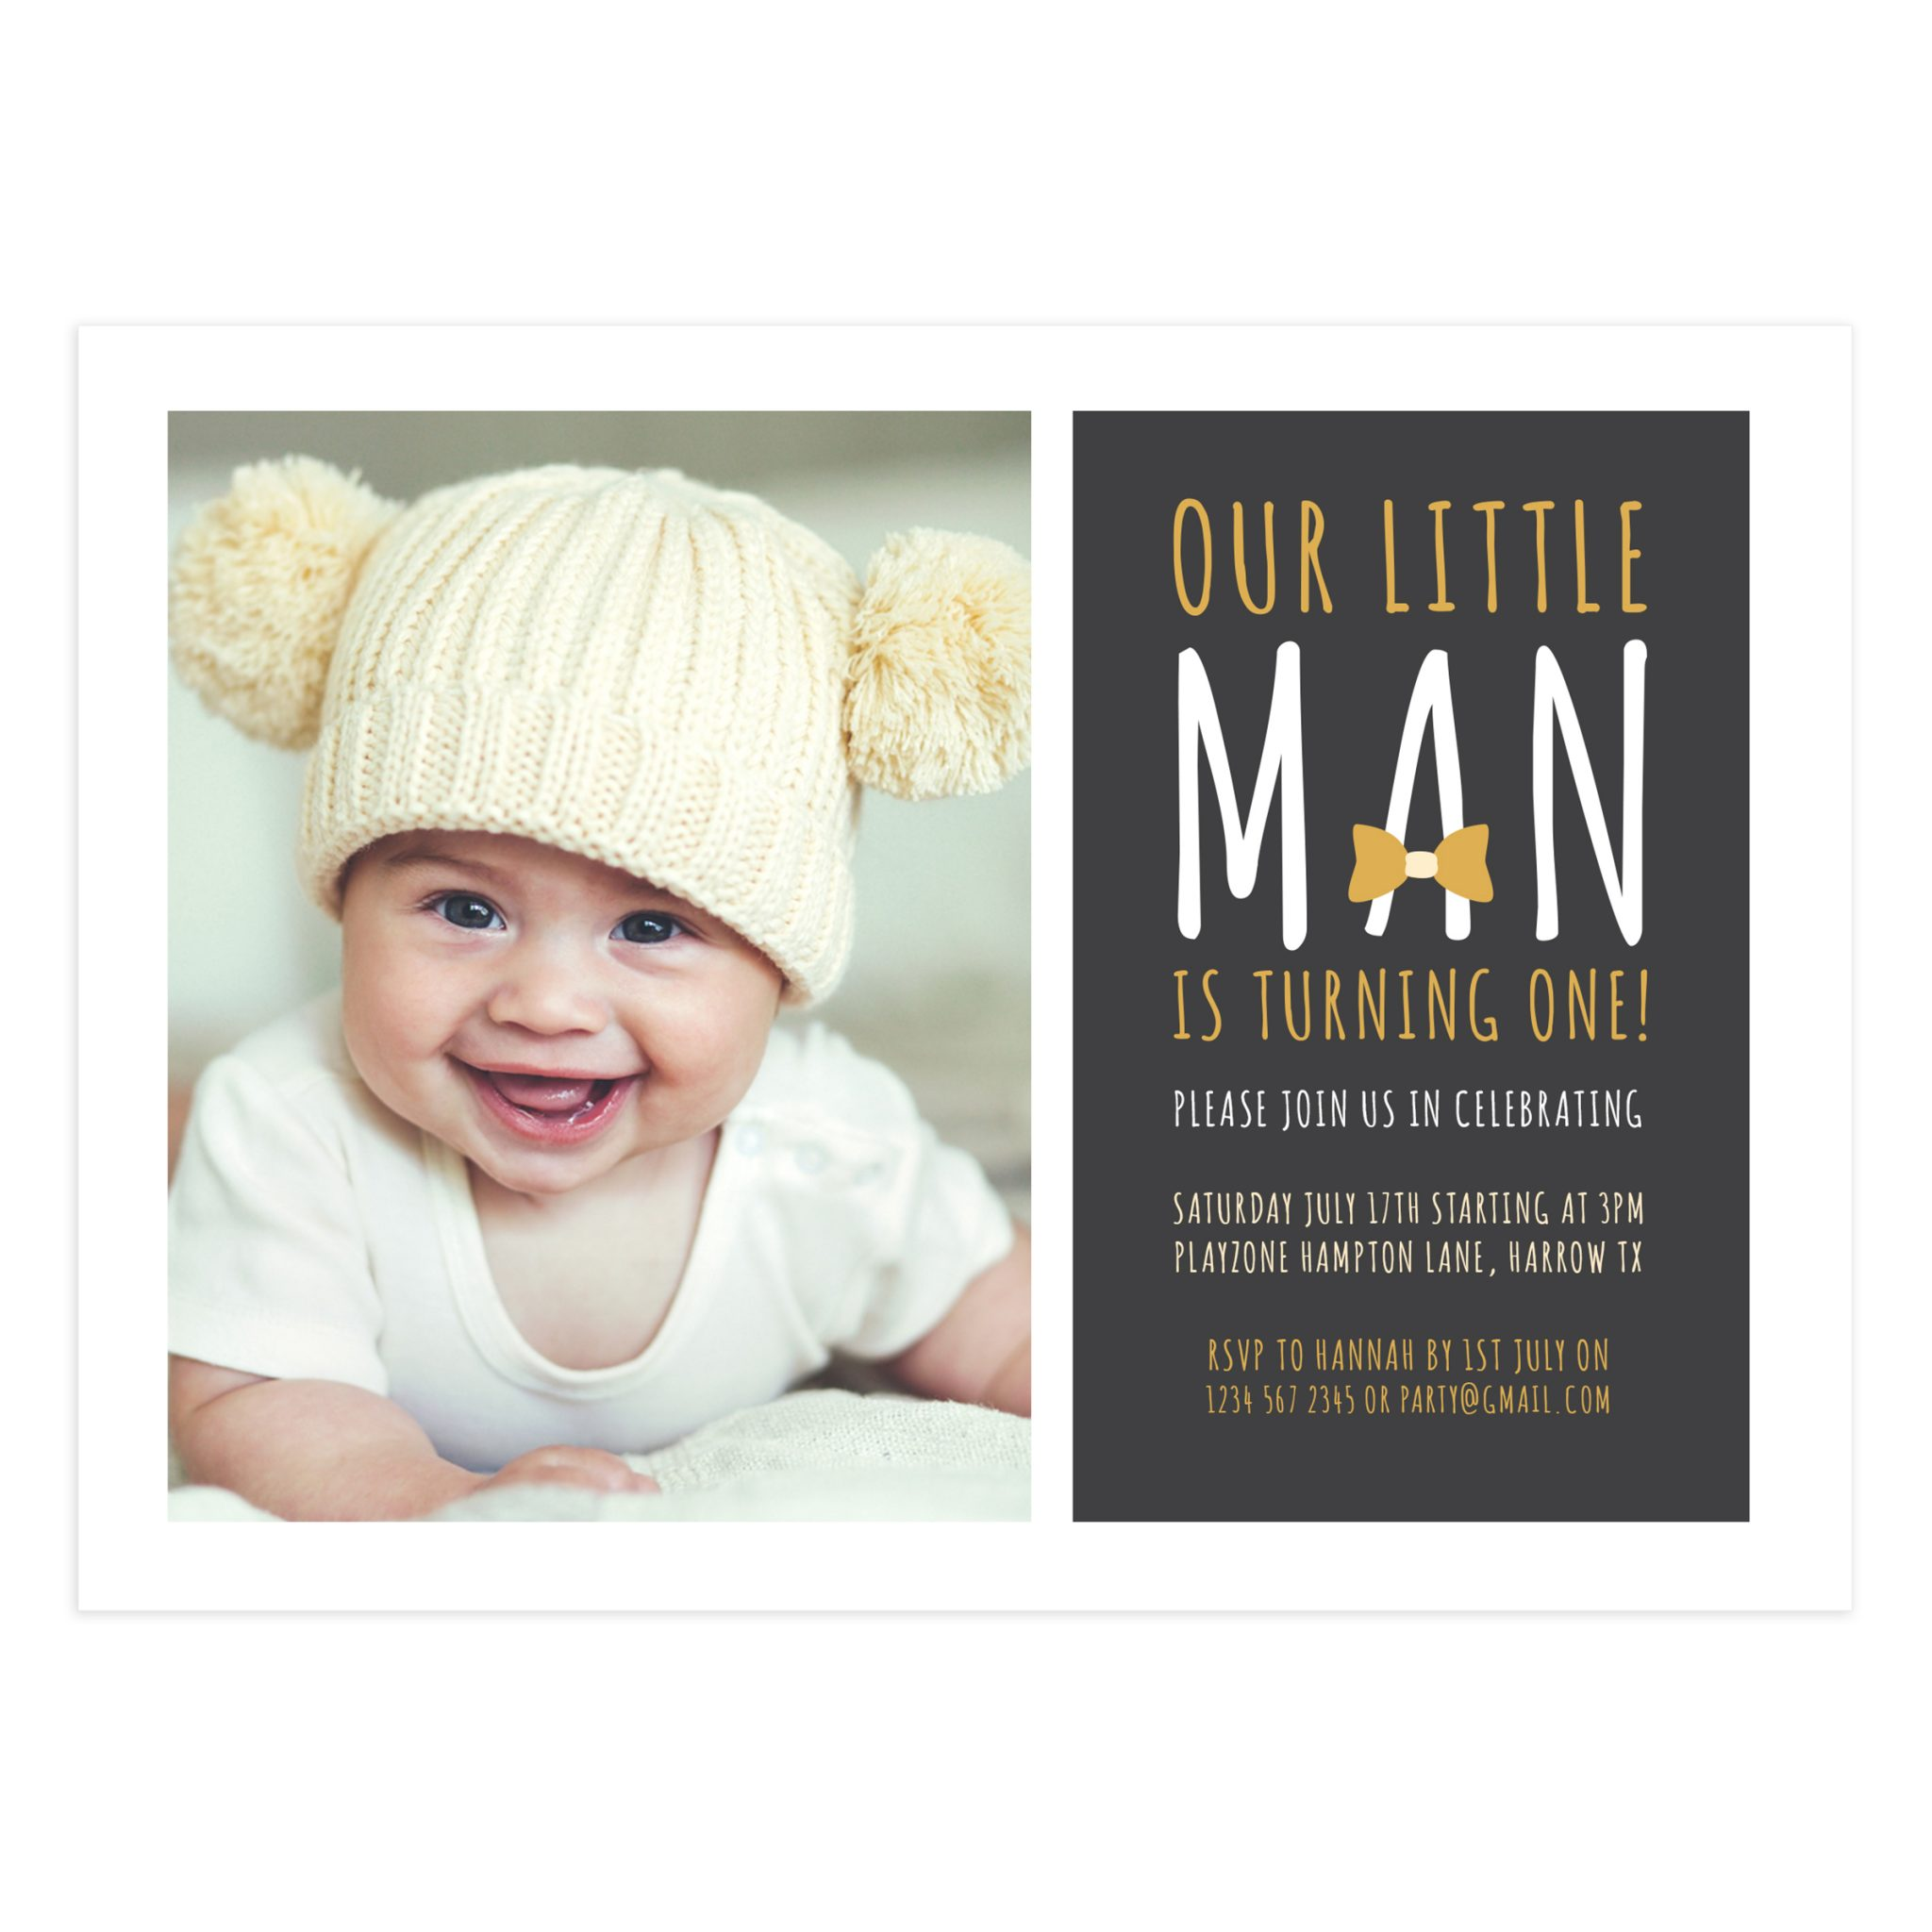 Printable LittleMan Birthday Party Card Invitation - Mockaroon